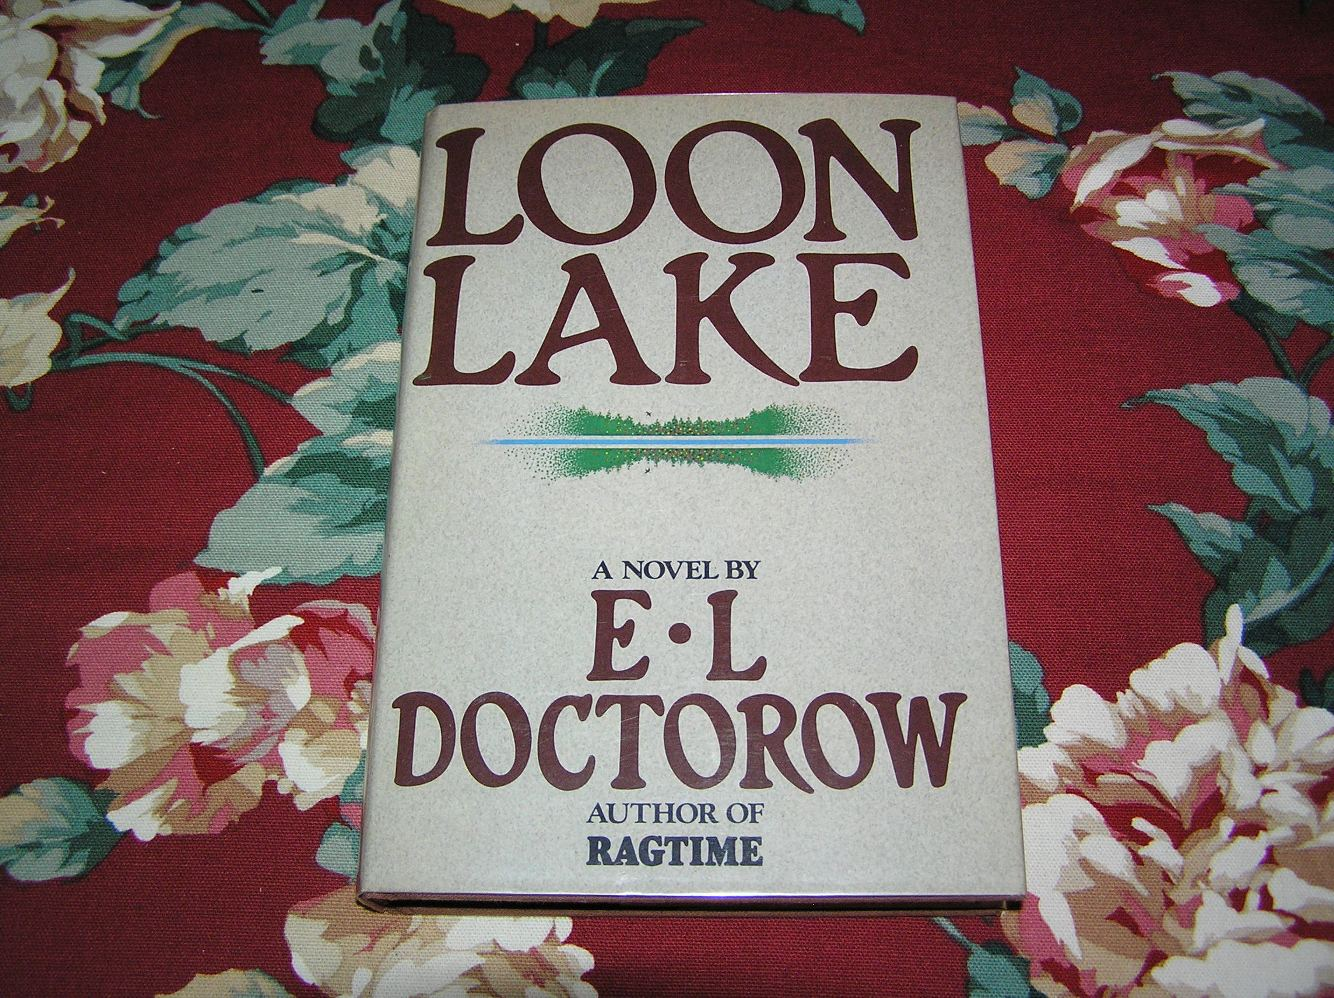 loon lake by e l doctorow East wind, rain / loon lake by nash, n richard / doctorow, e l and a great selection of similar used, new and collectible books available now at abebookscom.